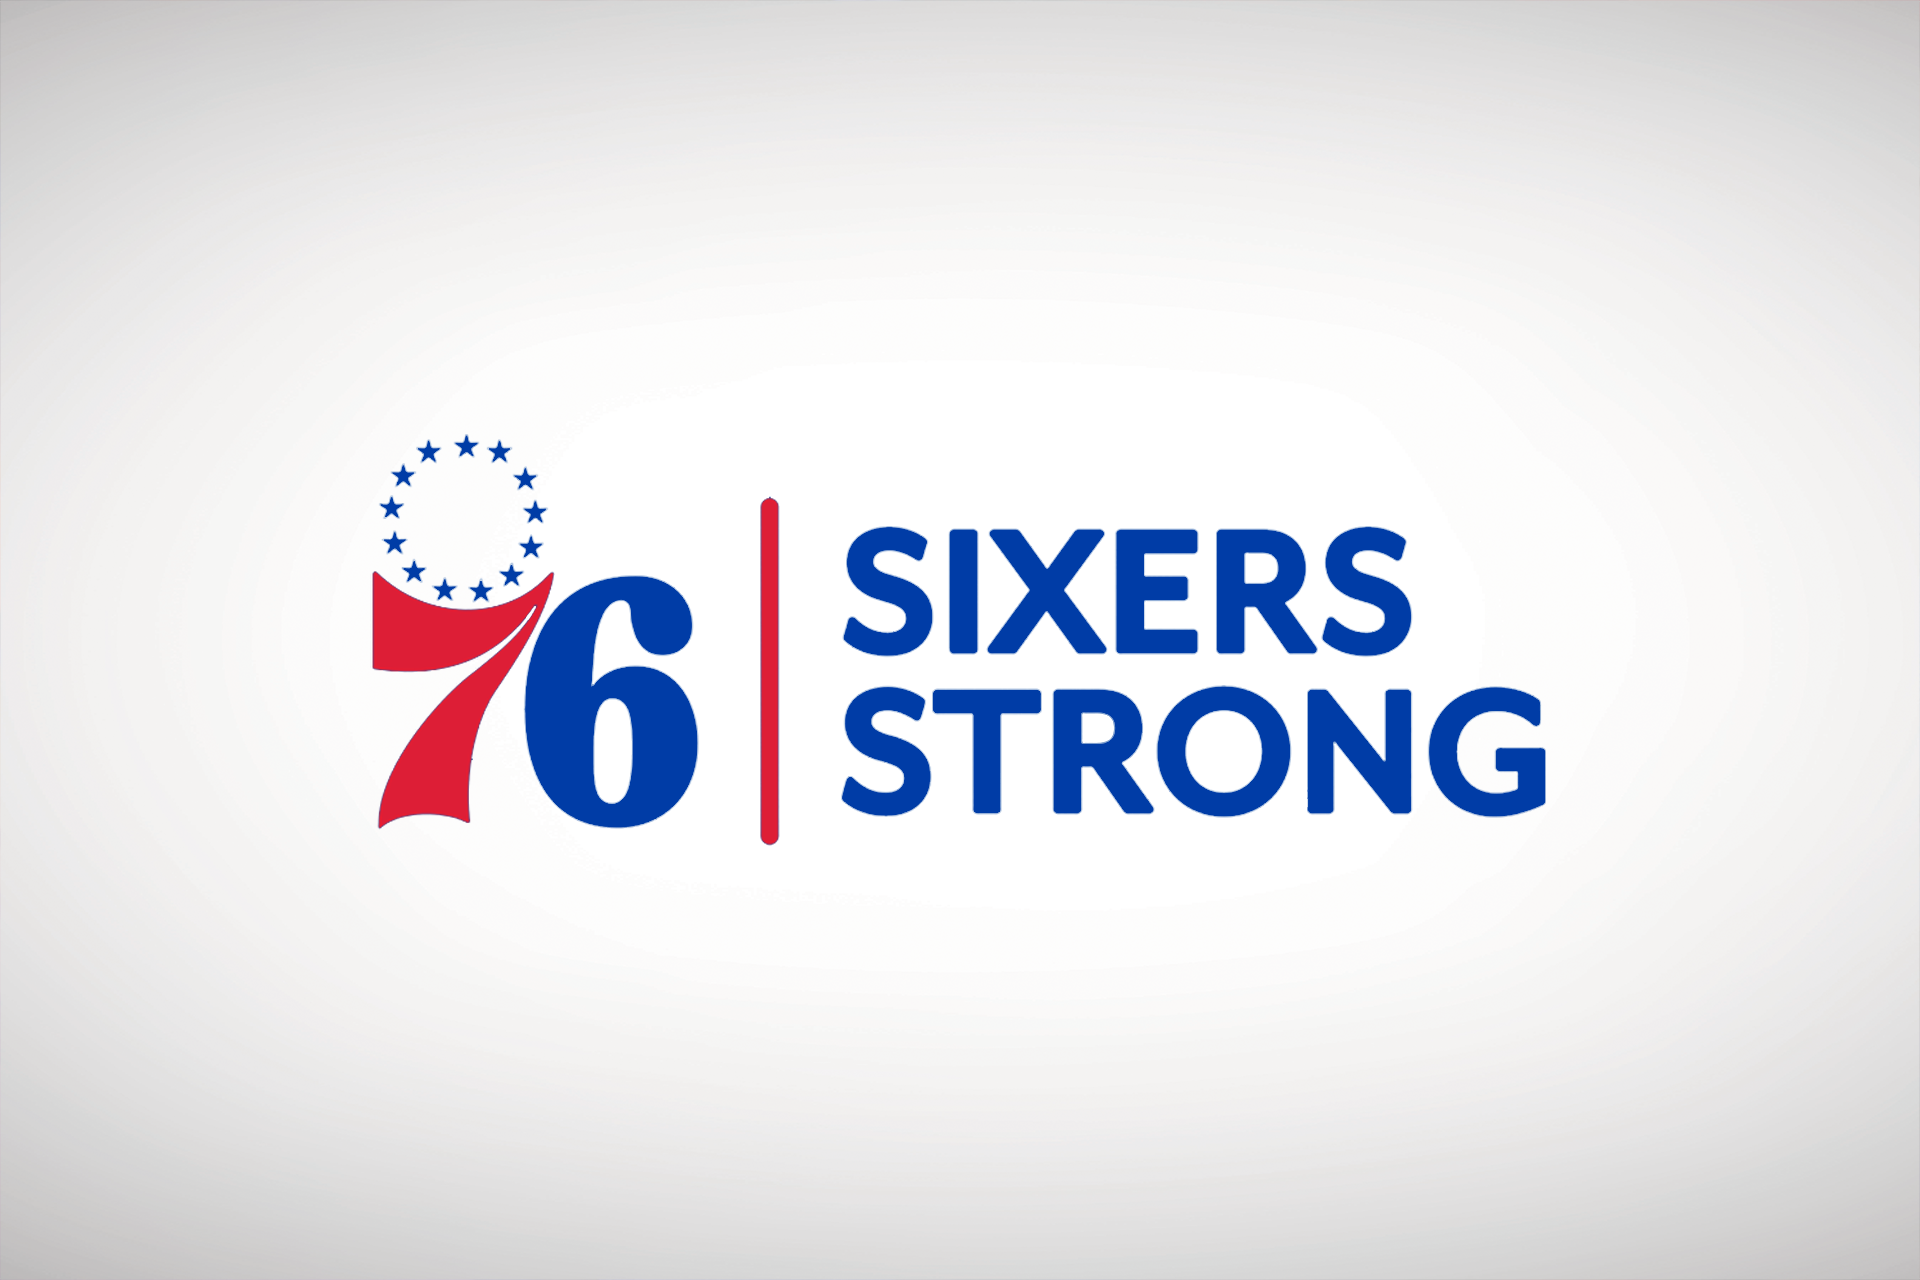 Sixers Strong